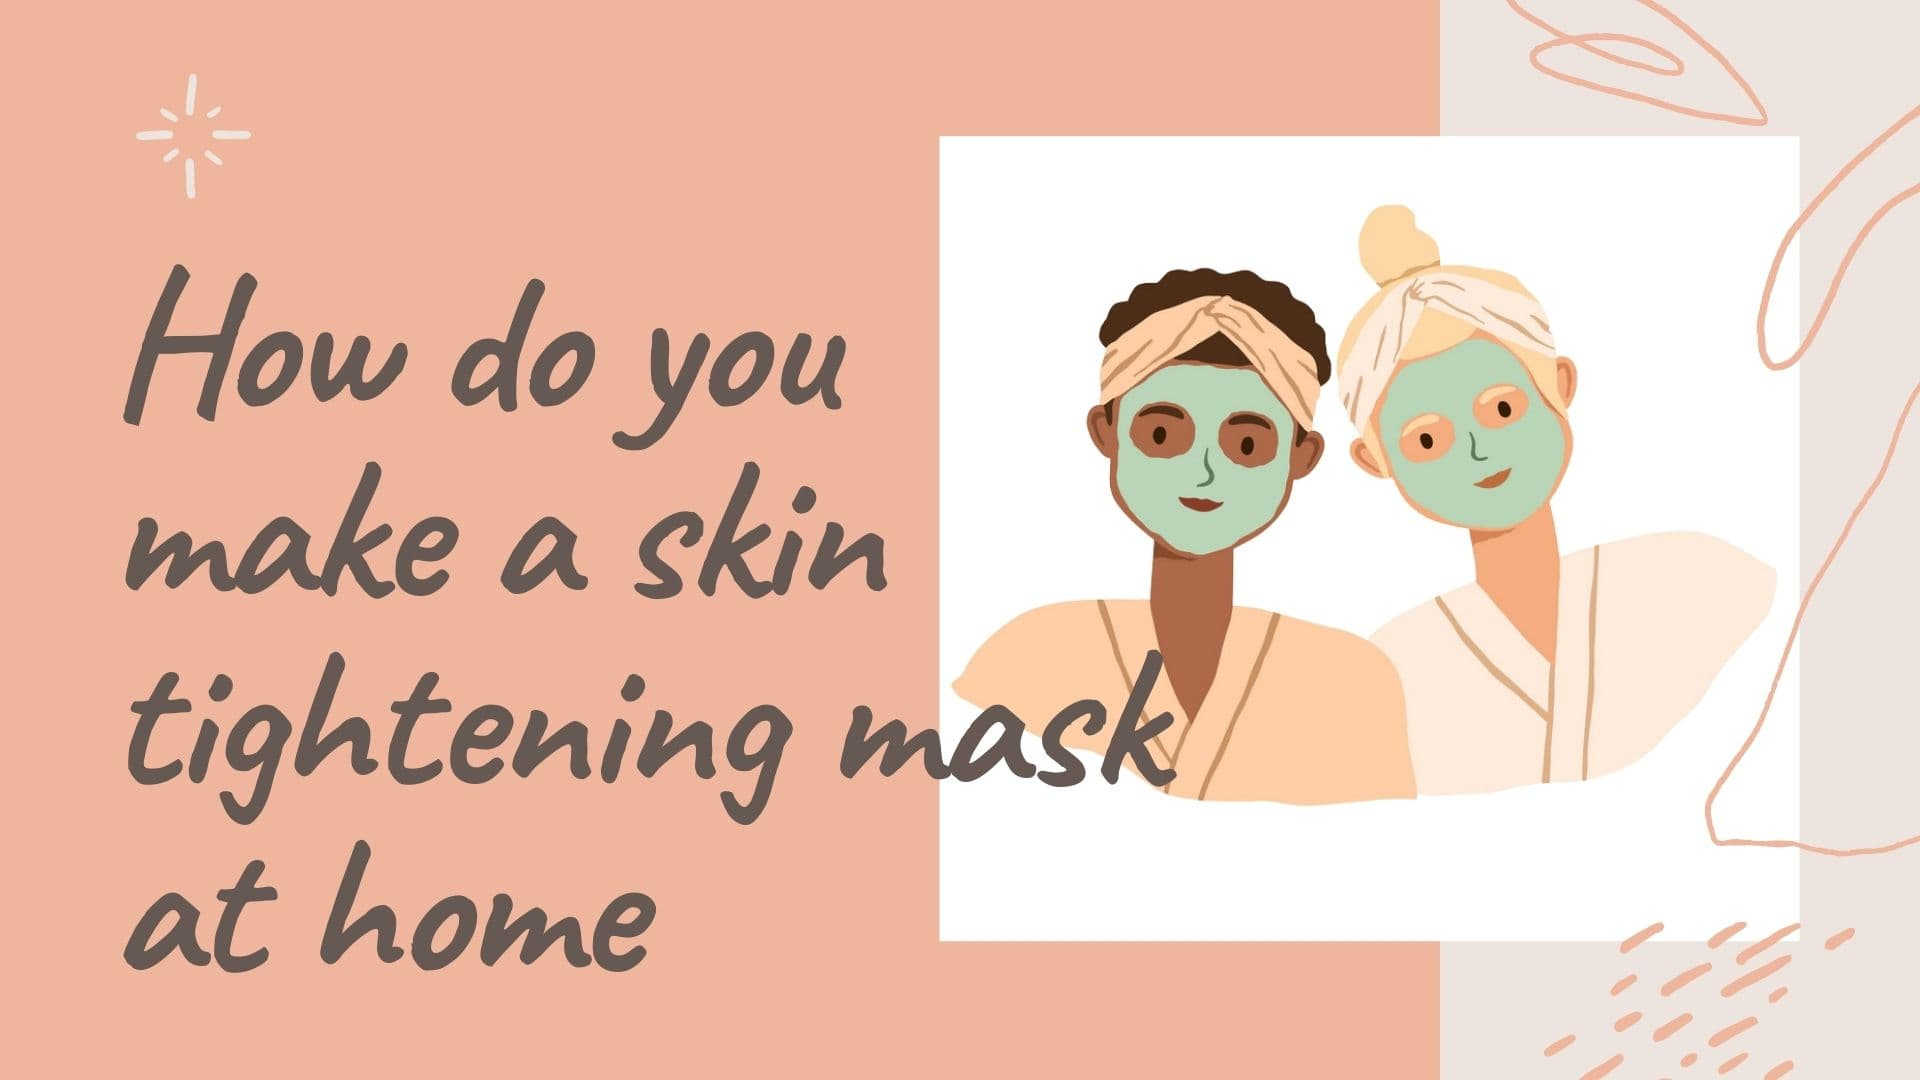 How do you make a skin tightening mask at home